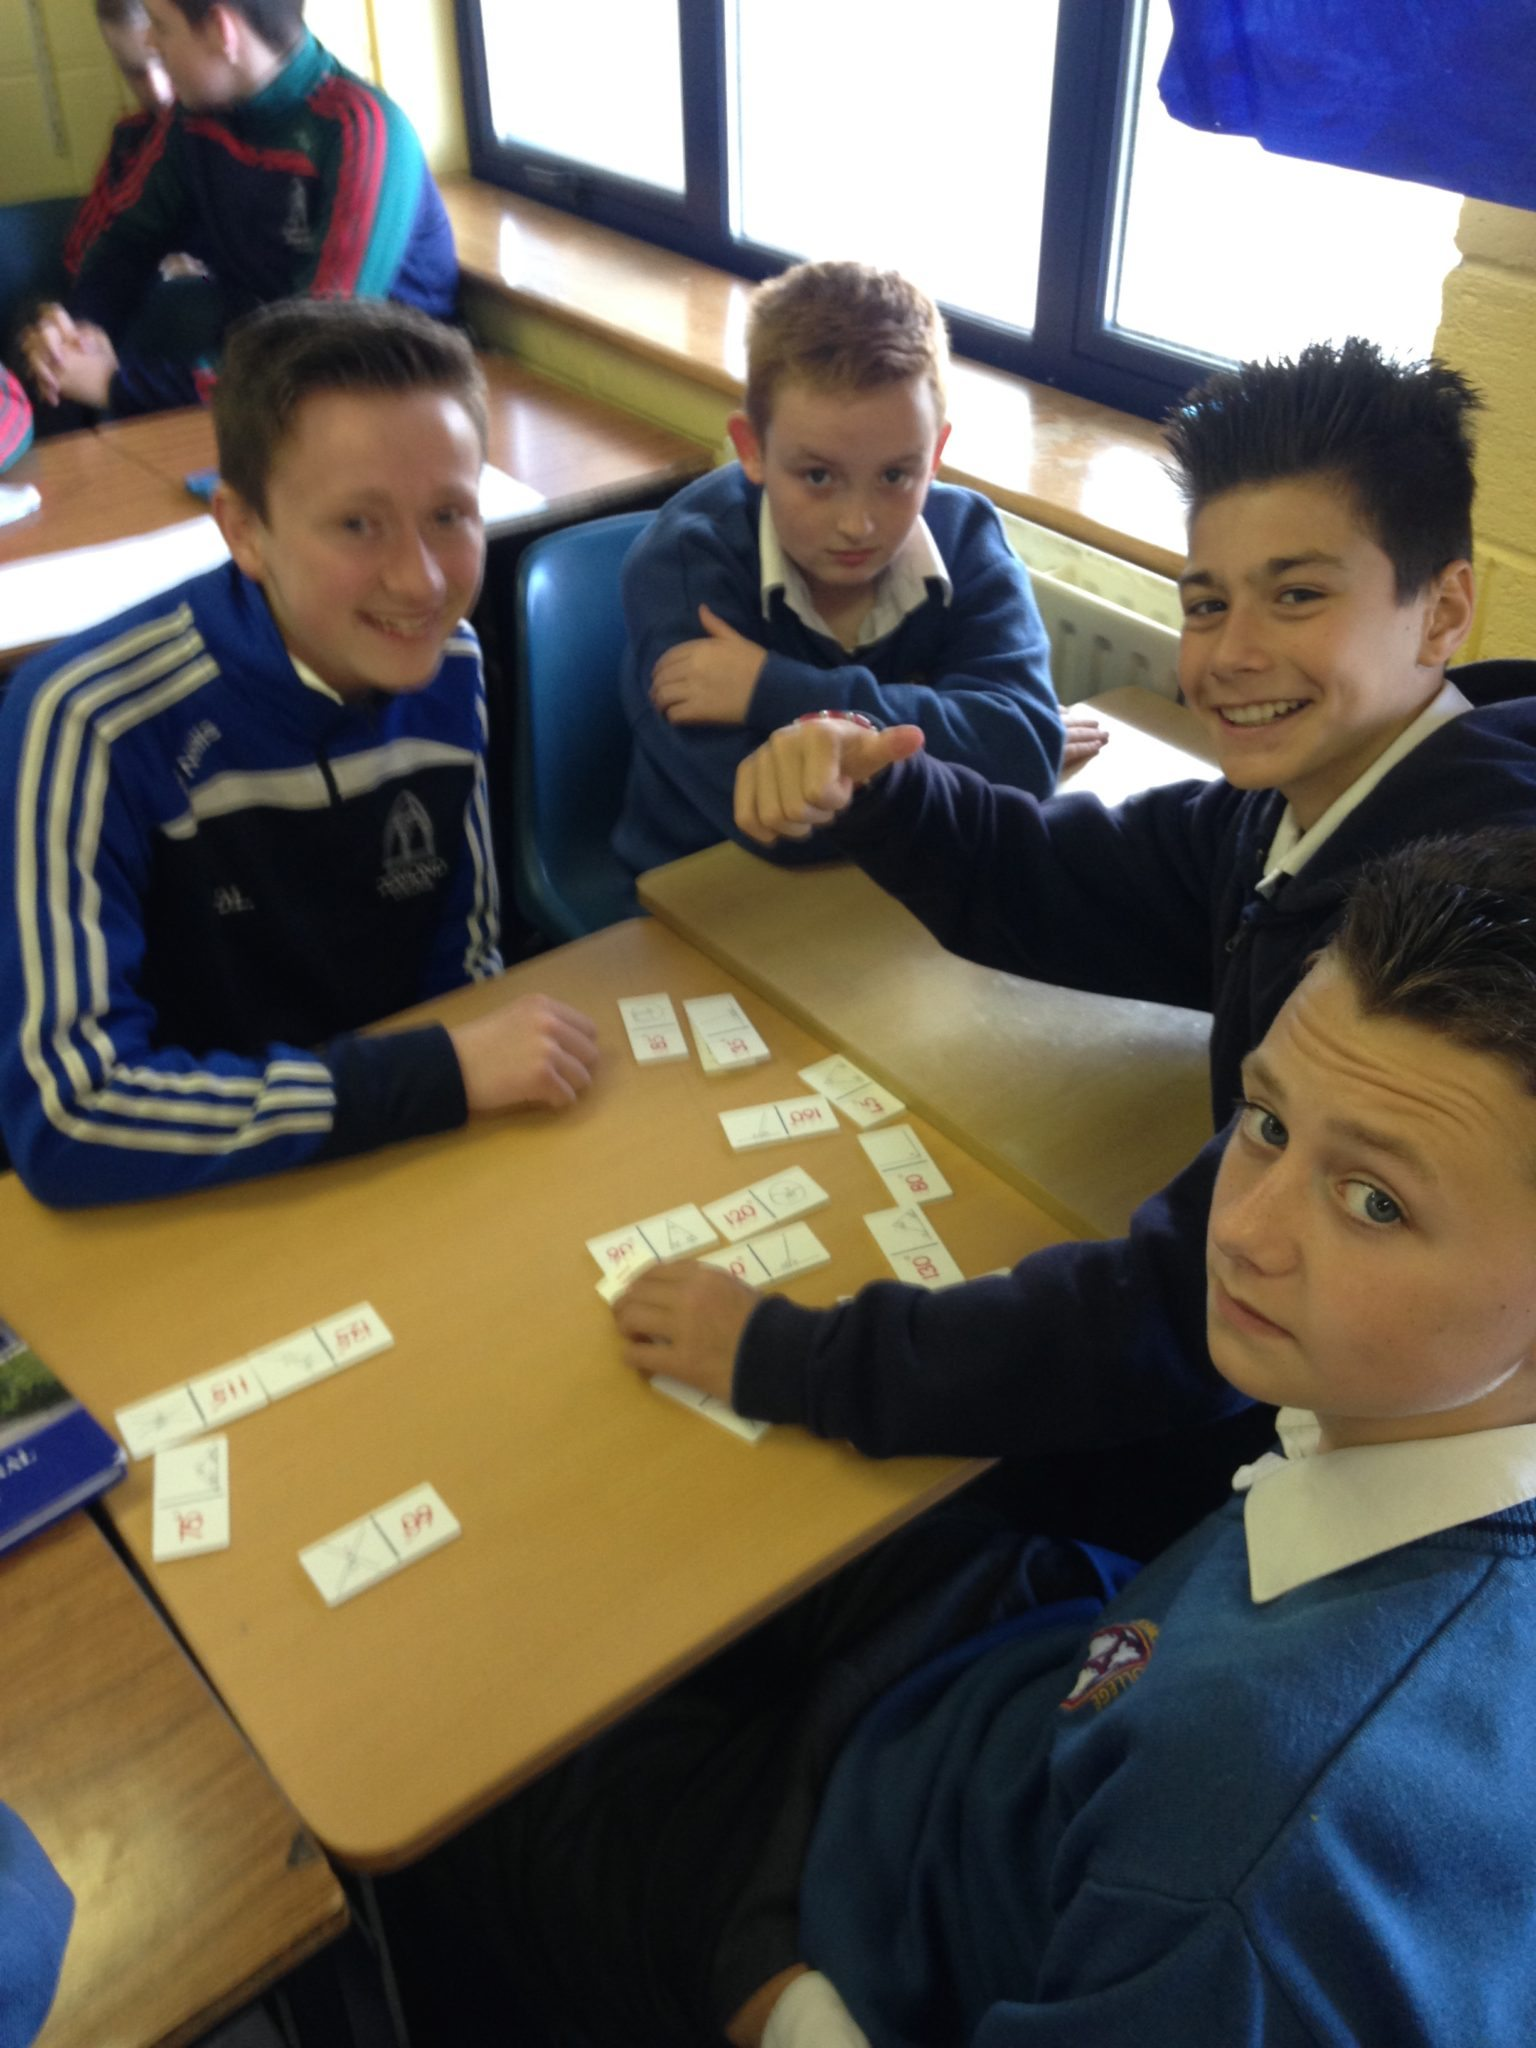 Desmond College Newcastle West 2015 : Peer Mentoring in Maths to Improve Numeracy Skills